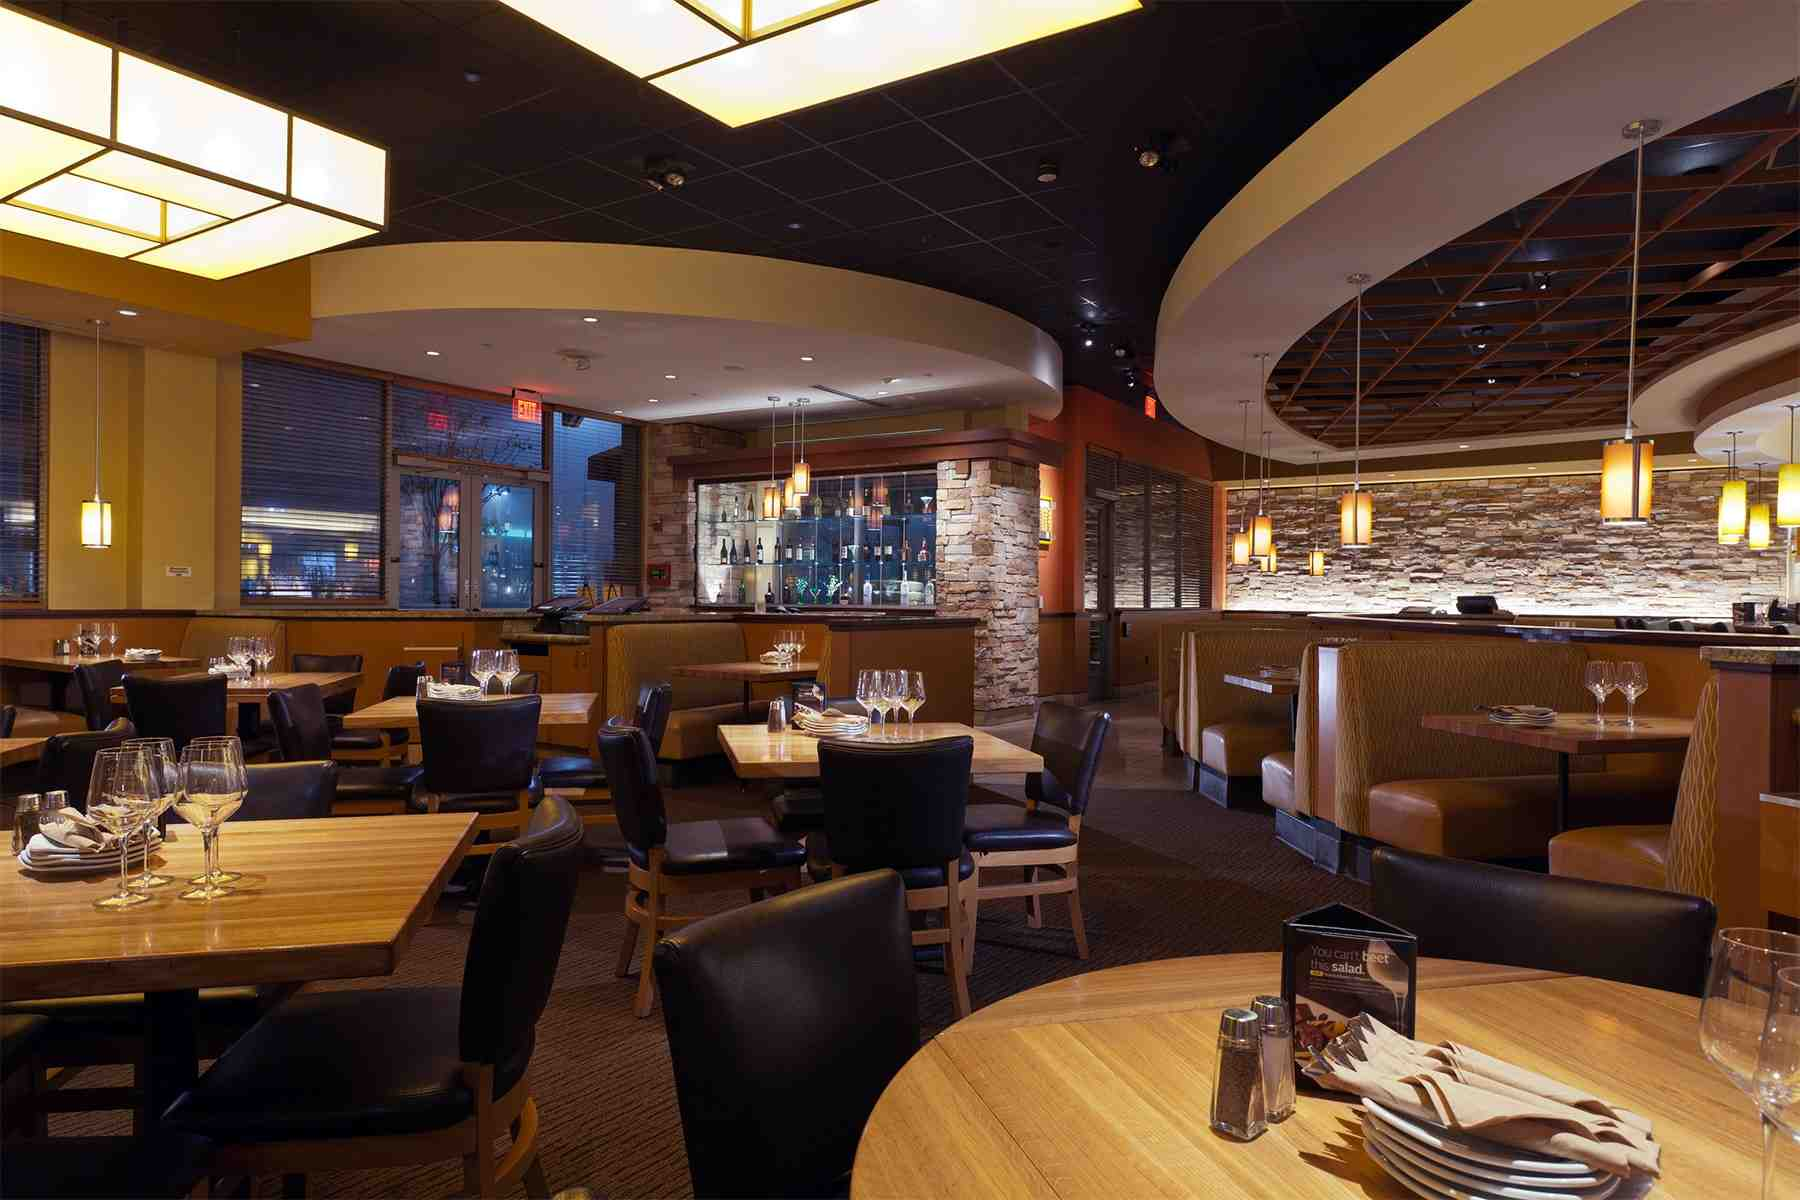 california pizza kitchen plymouth meeting pa decor pictures